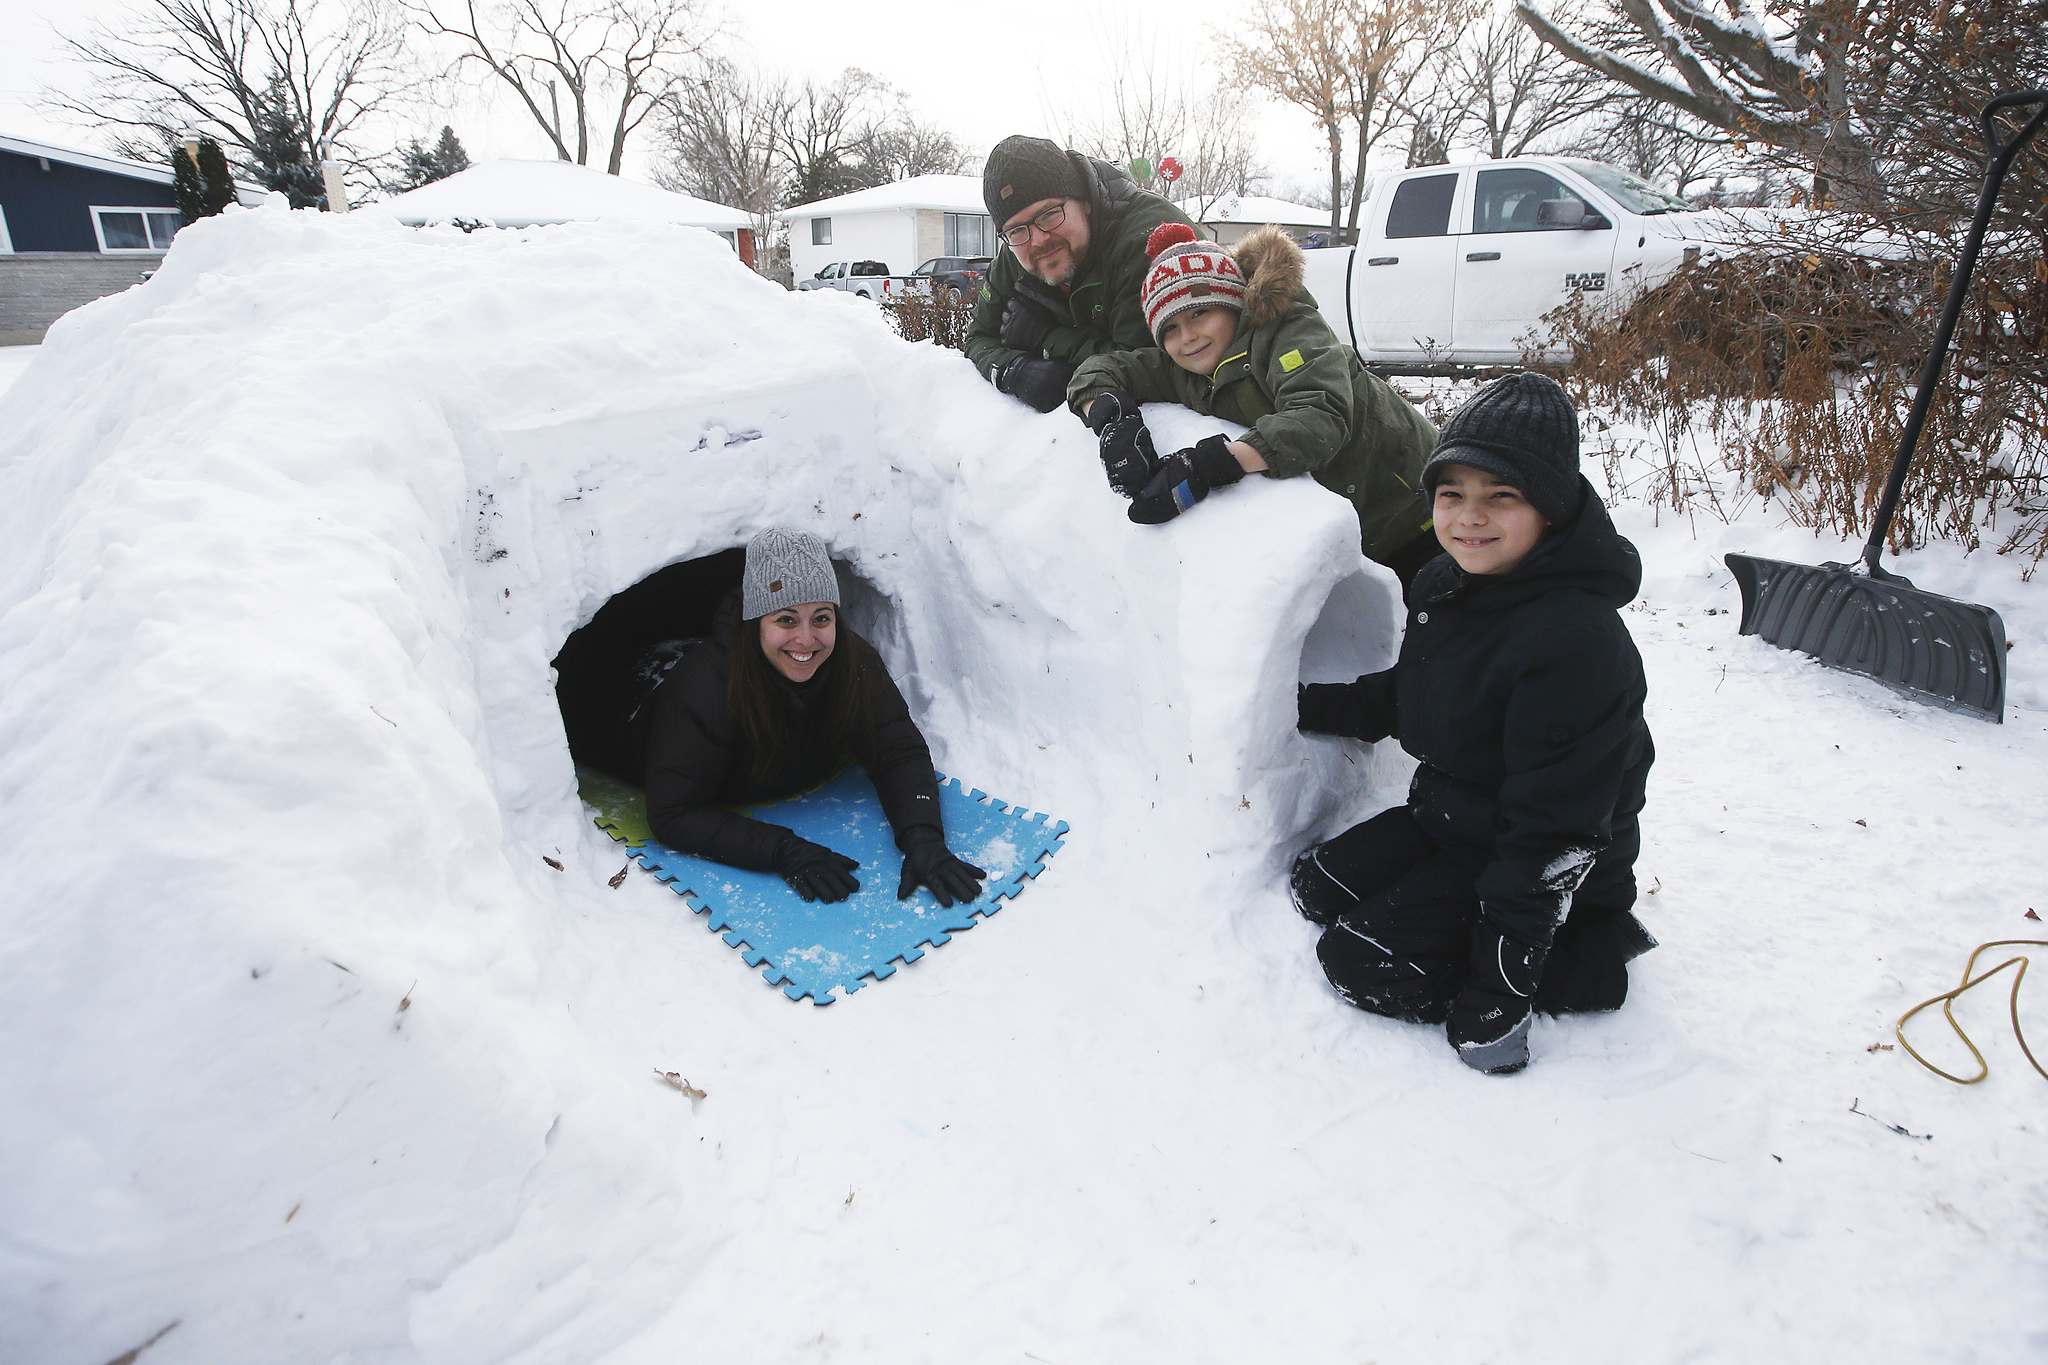 JOHN WOODS / WINNIPEG FREE PRESS</p><p>Brendan McManus and Marcela Cabezas work on their quinzee with sons Nate (right) and Kellan. Every winter since Nate was three, the family has built a snow shelter in their front yard.</p></p></p>